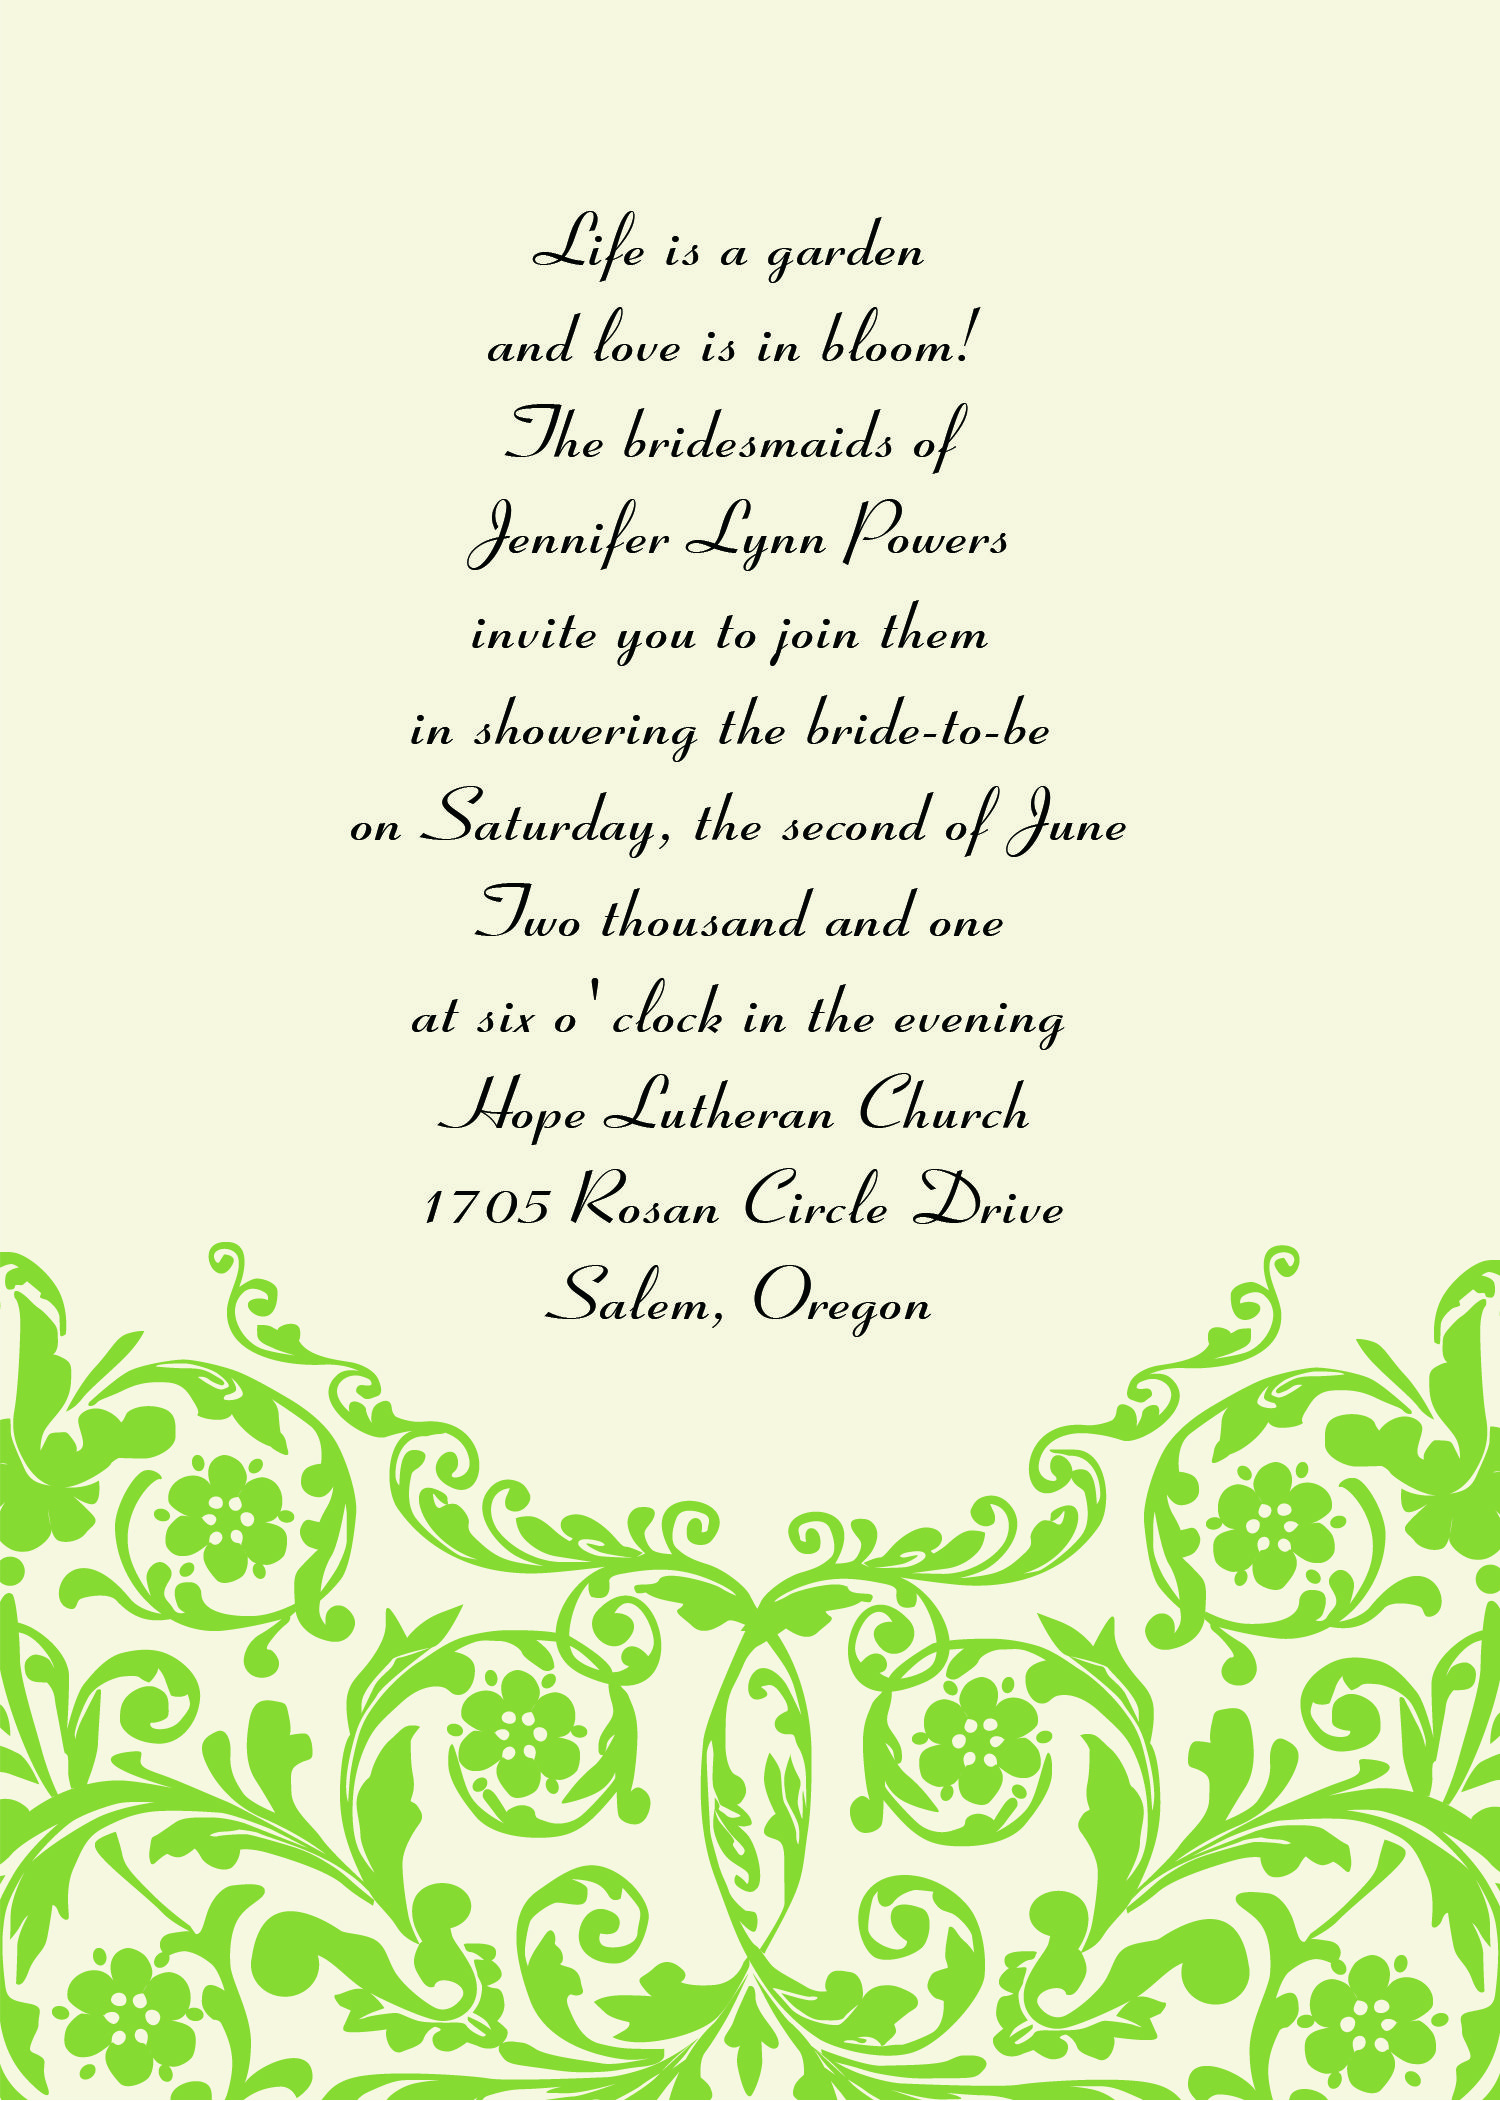 How to write wedding invitation wording | Wedding Dreams | Pinterest ...